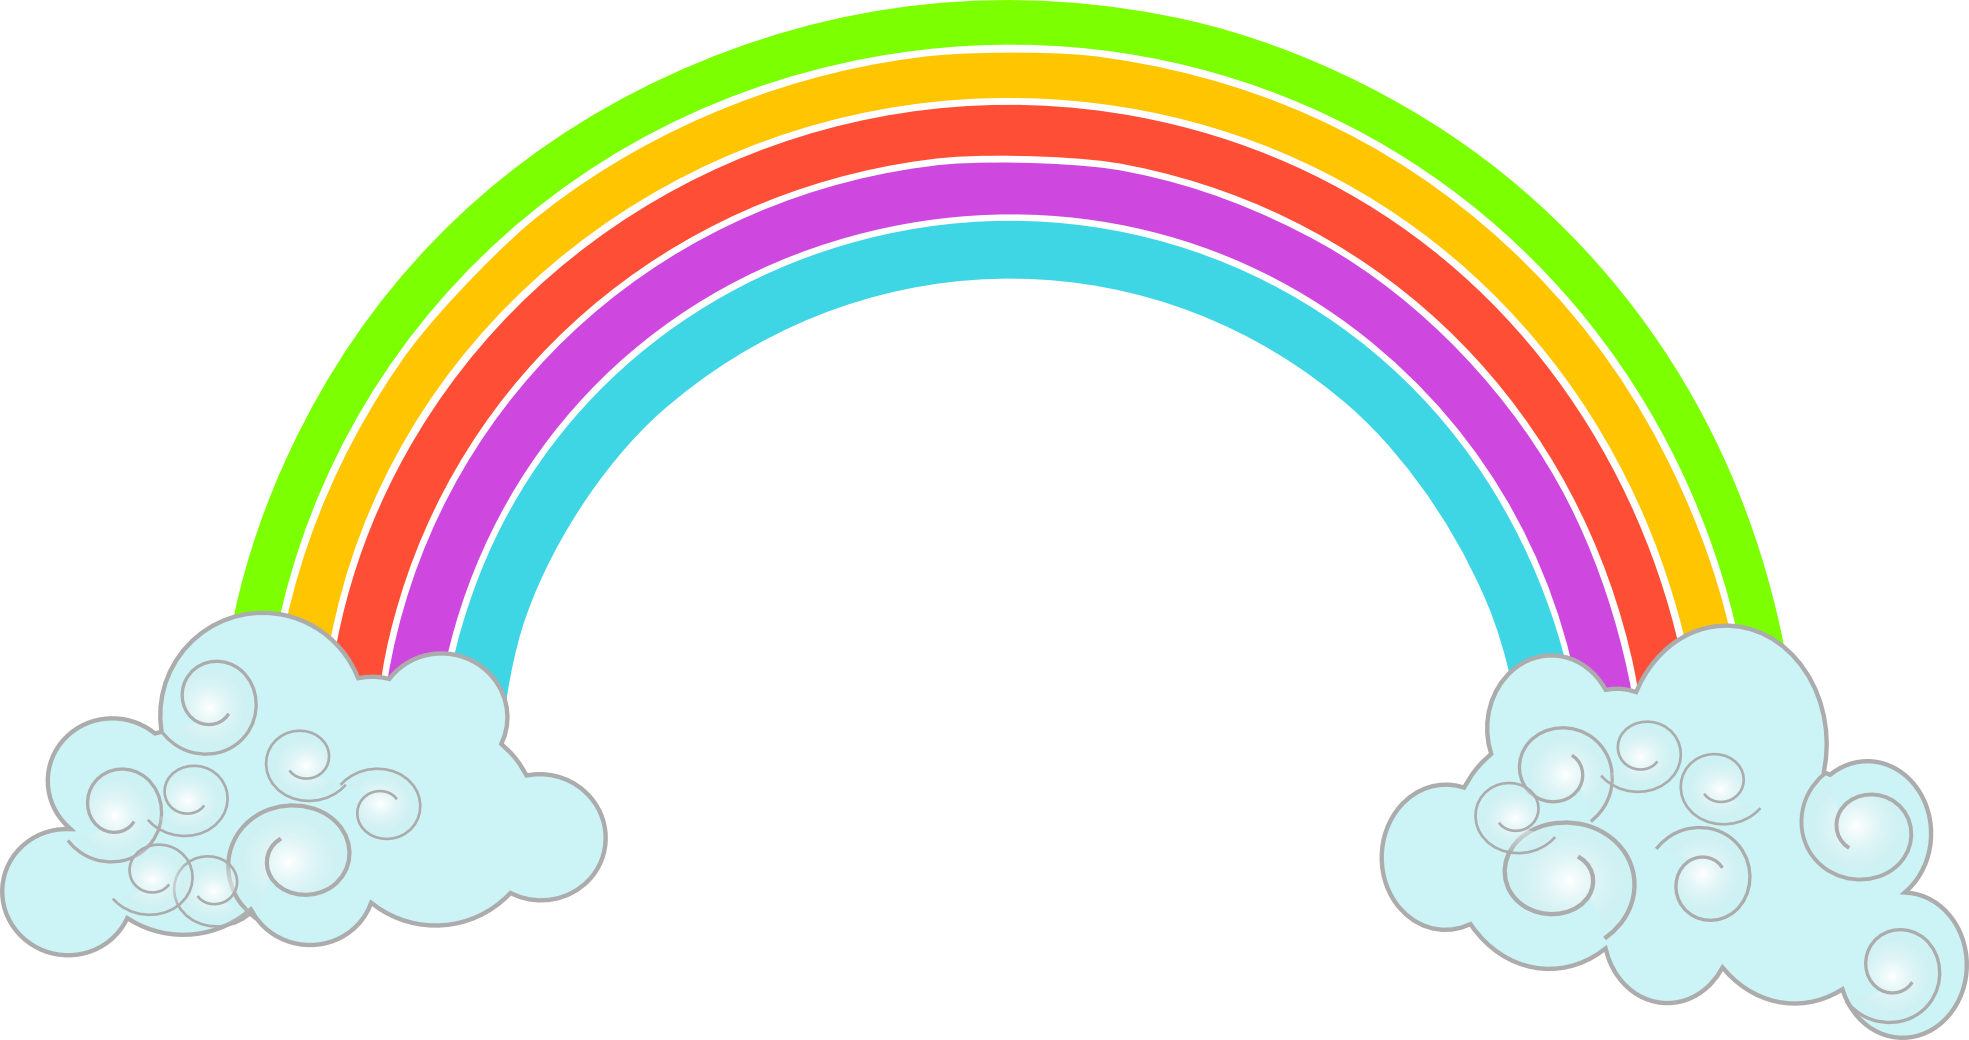 Rainbow With Clouds Png Clipart image #6995